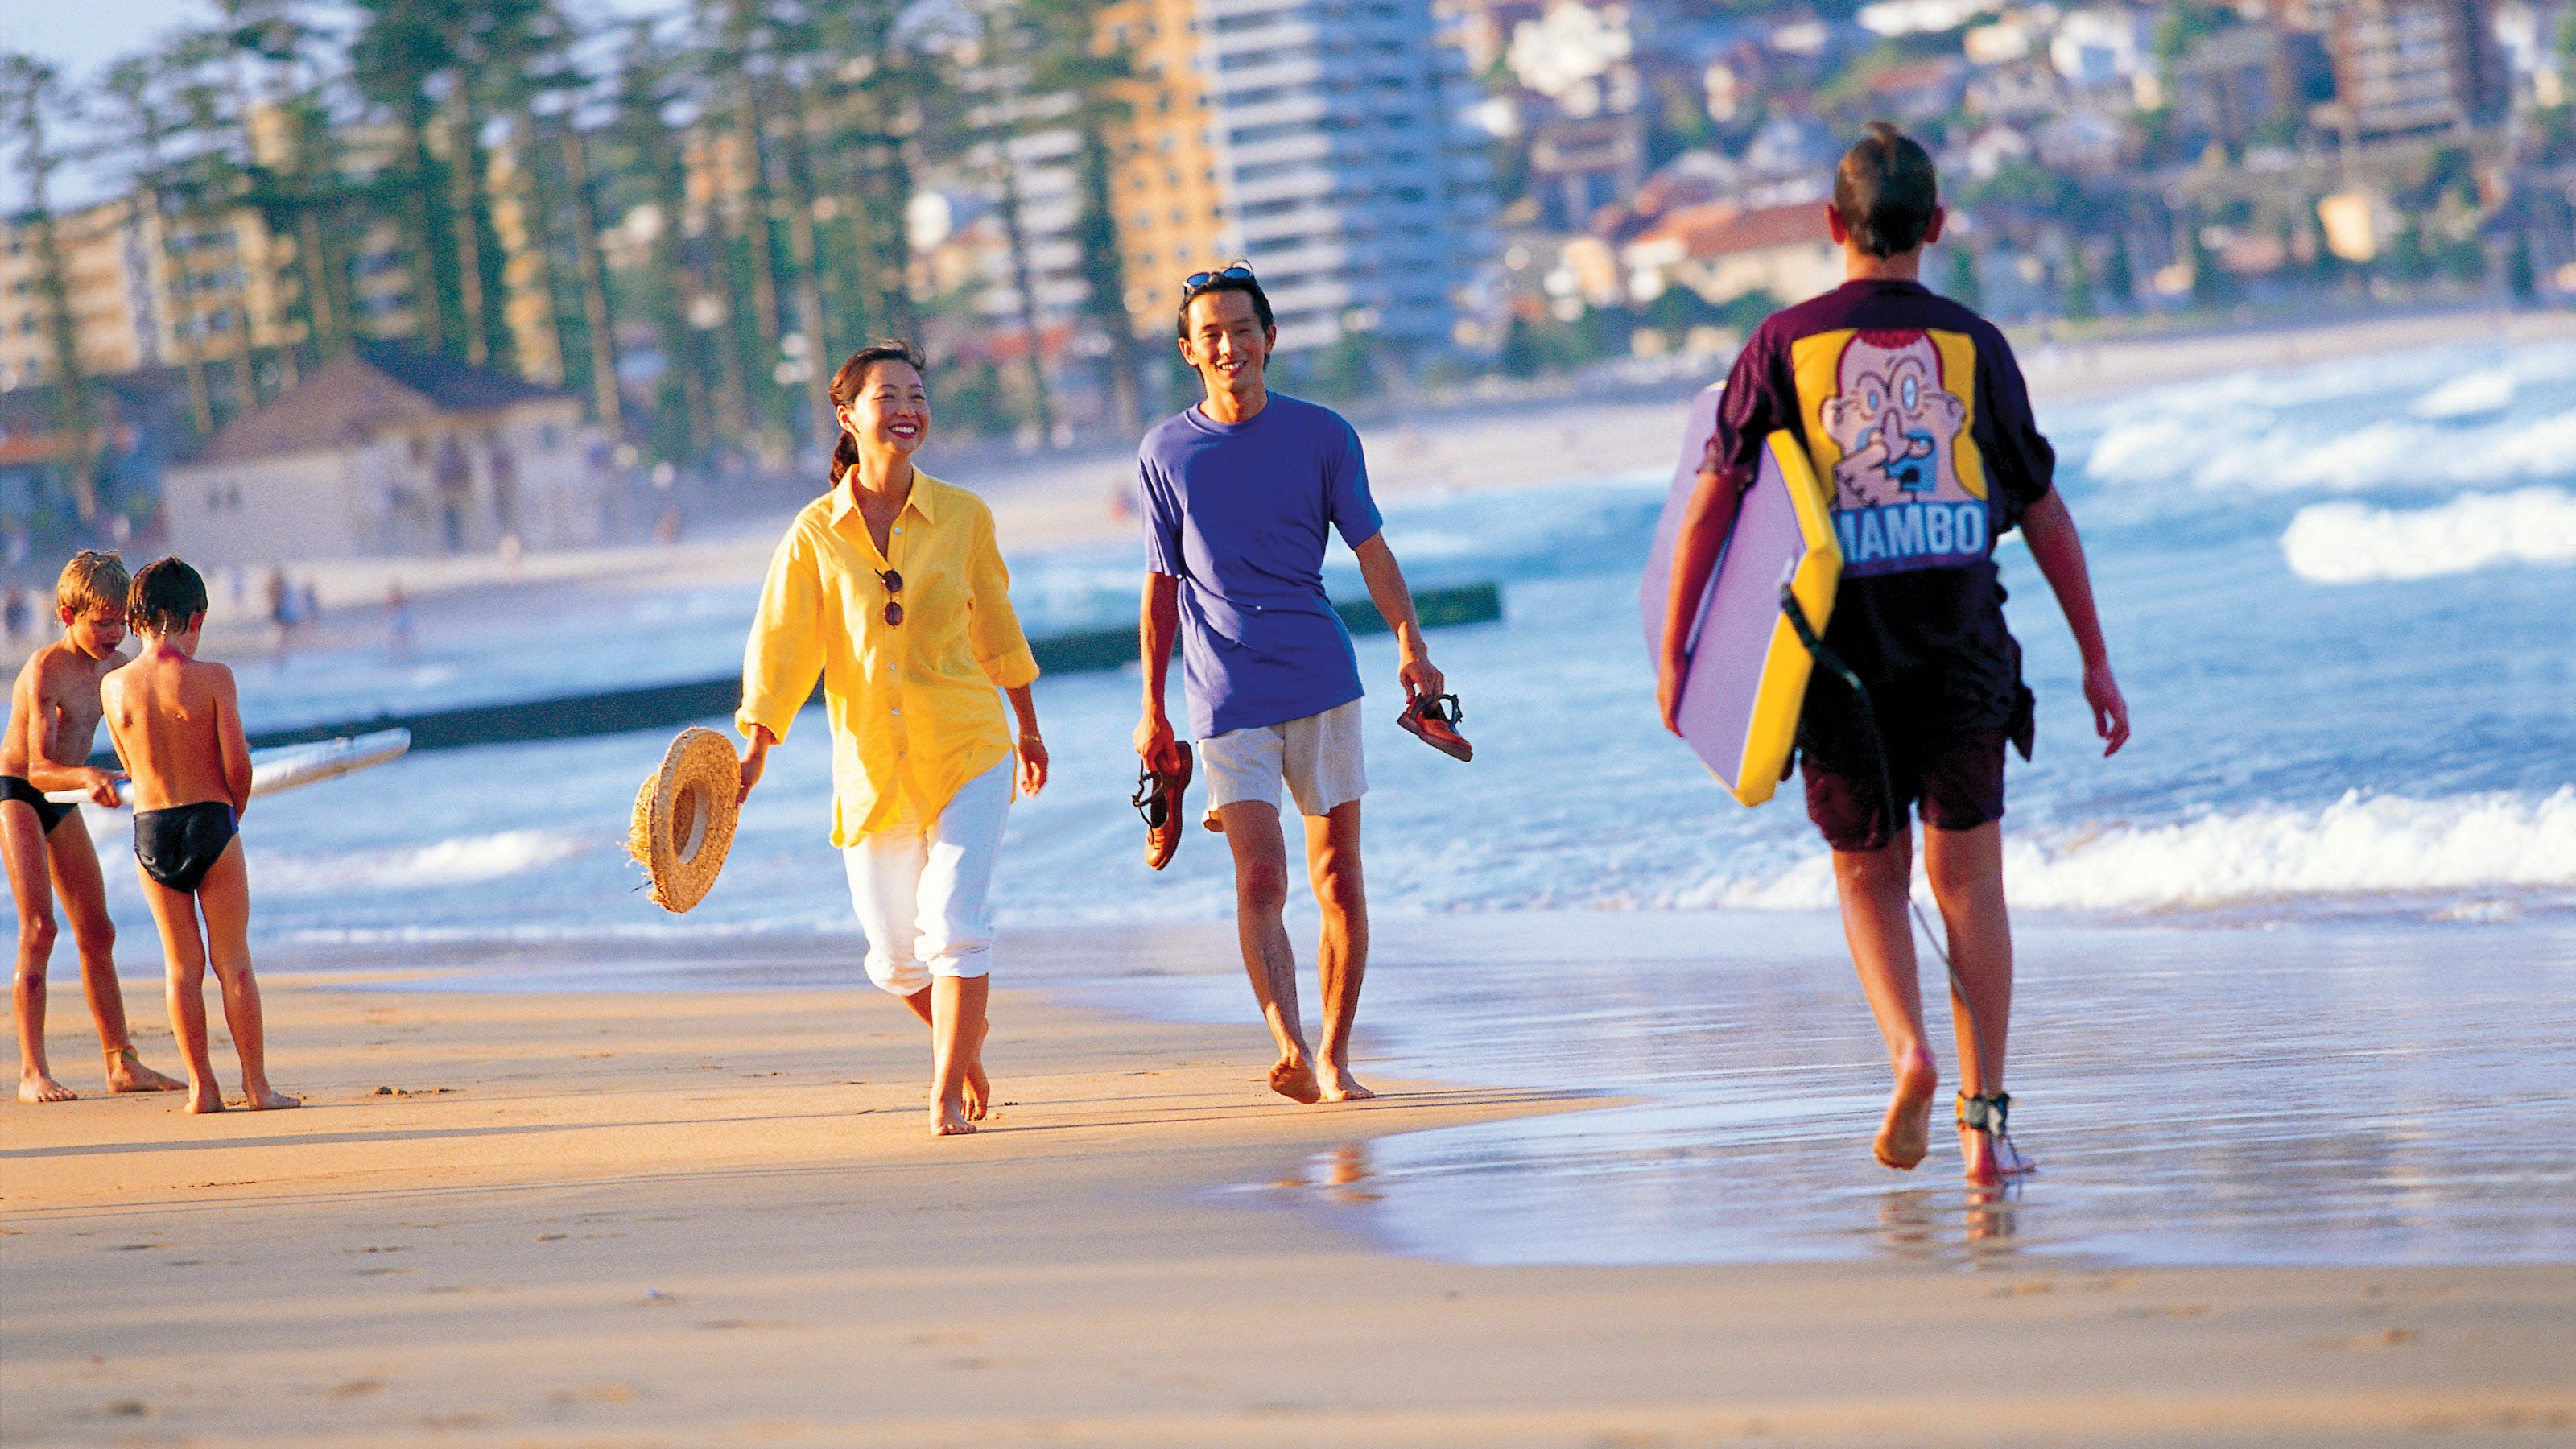 People walking on the shores of a beach in Australia on a beautiful sunny day